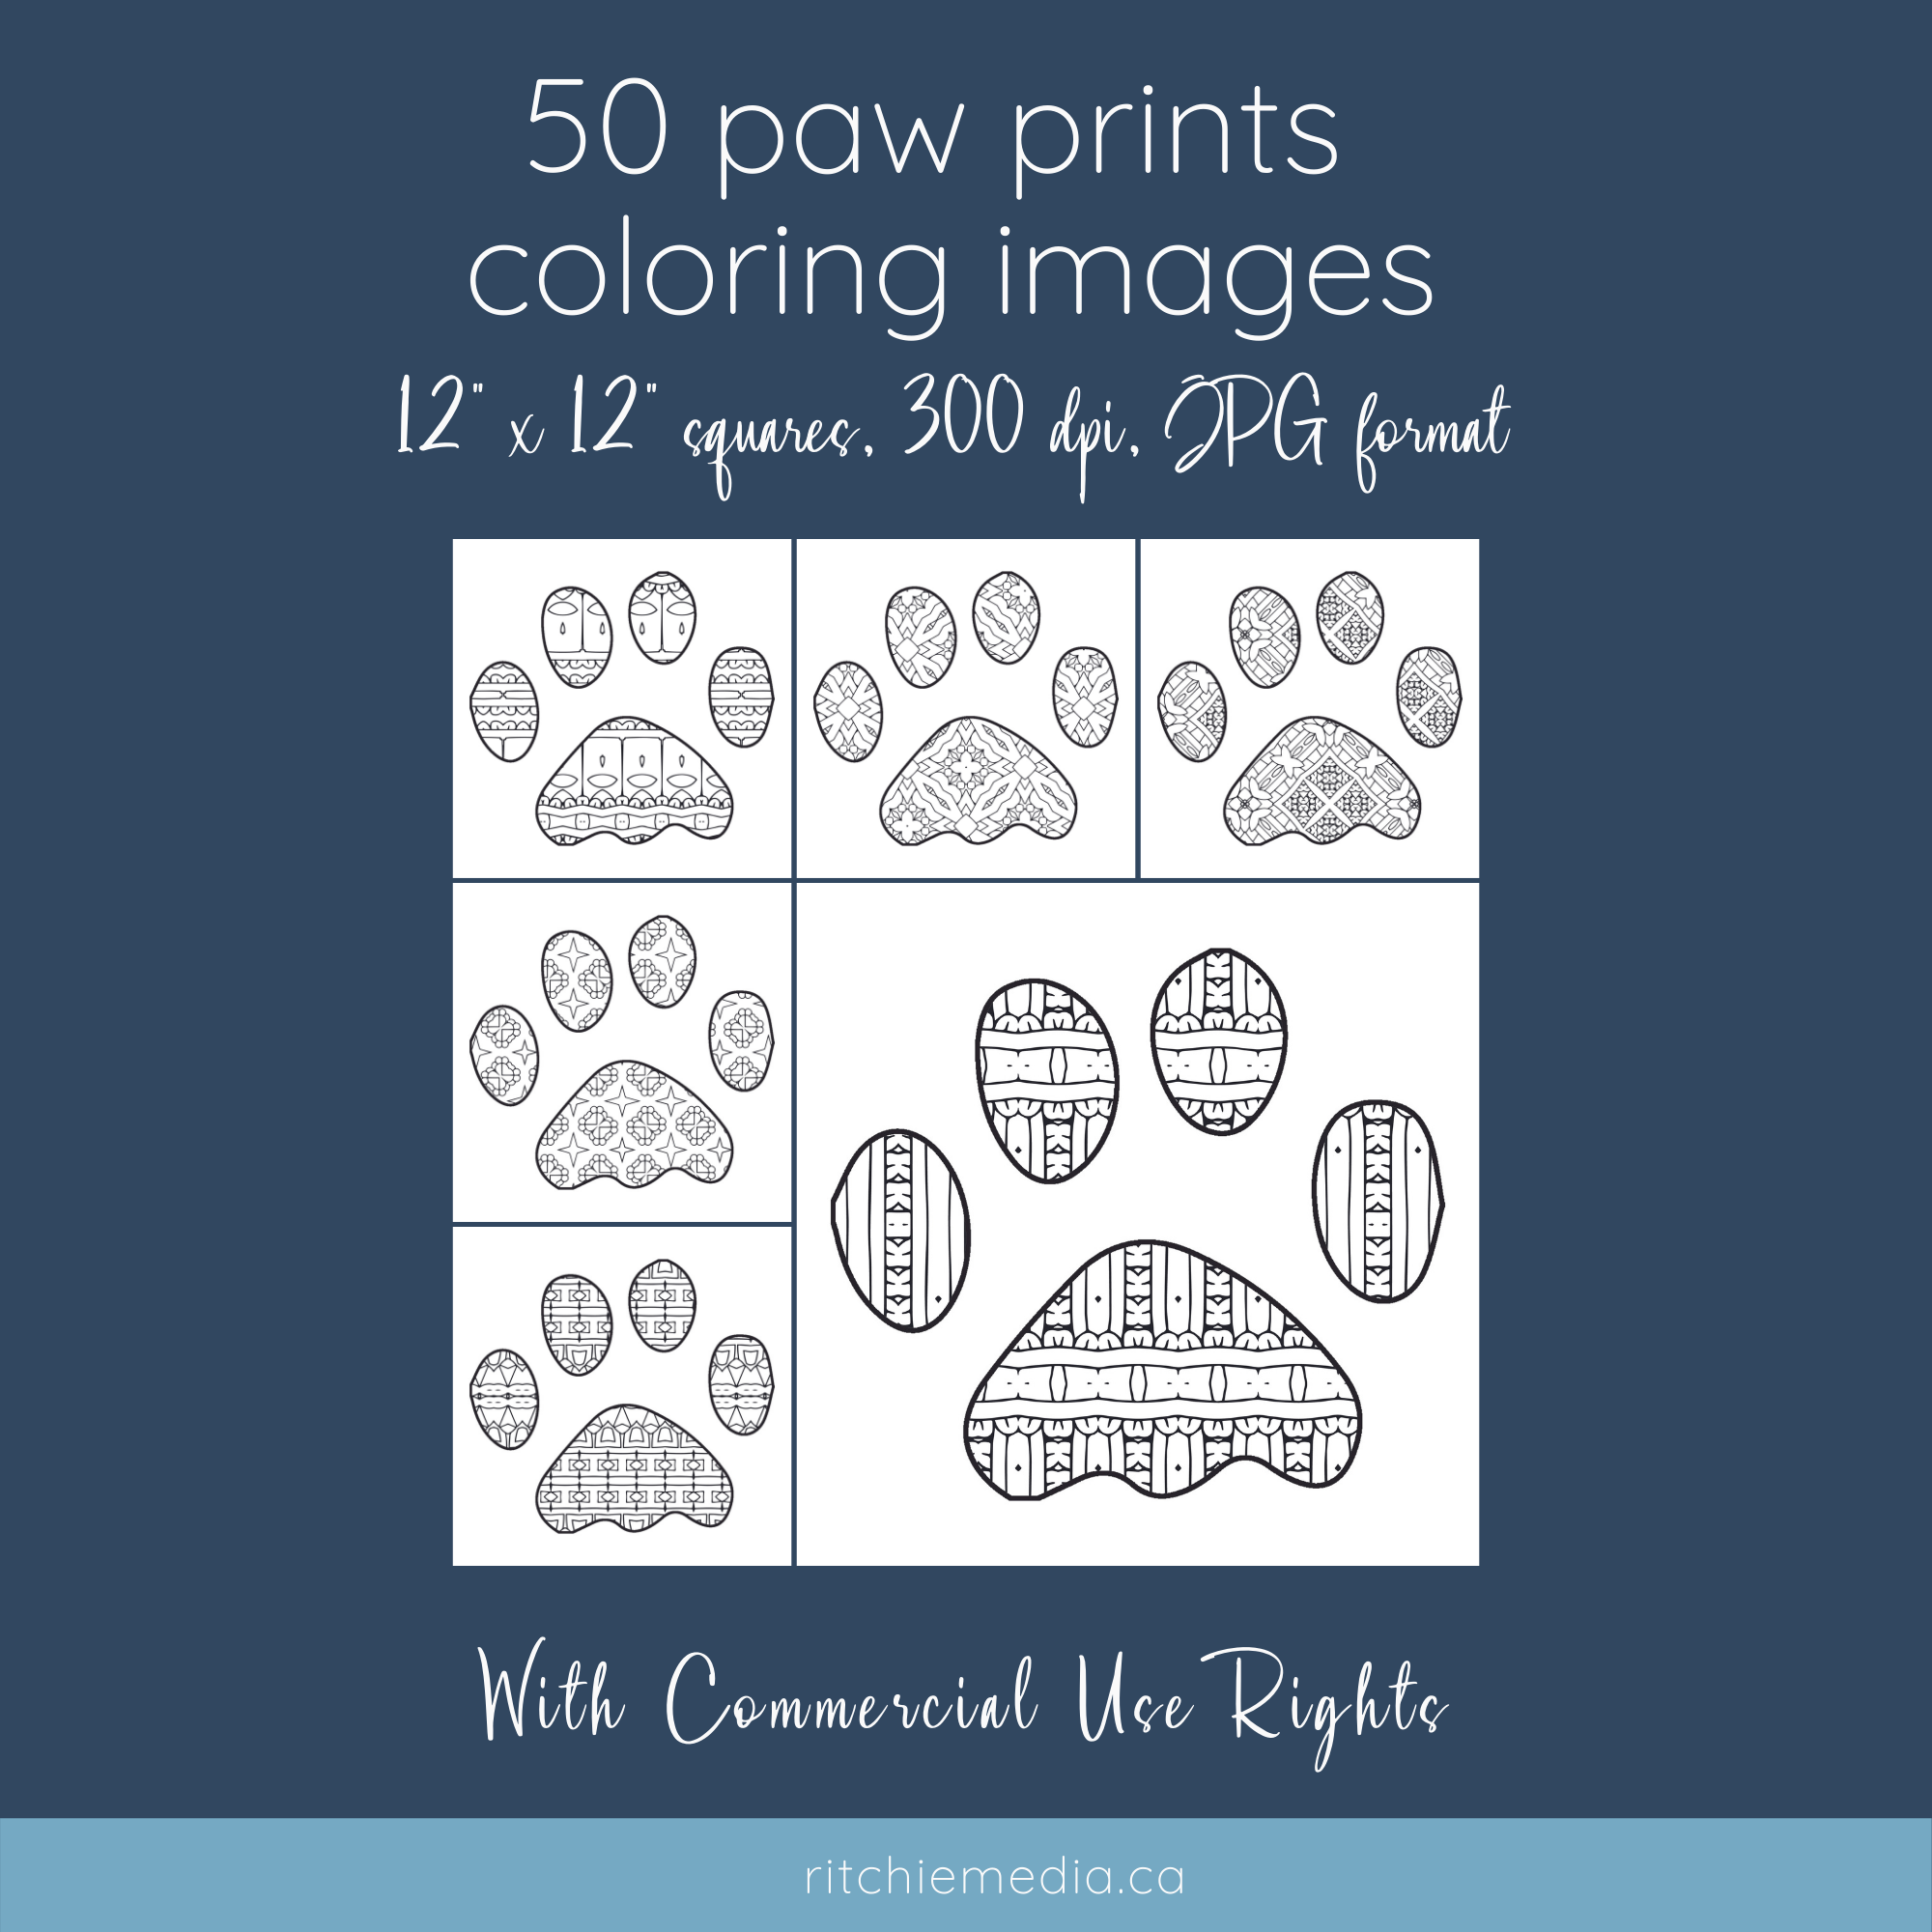 50 Paw Prints Coloring Images Mockup